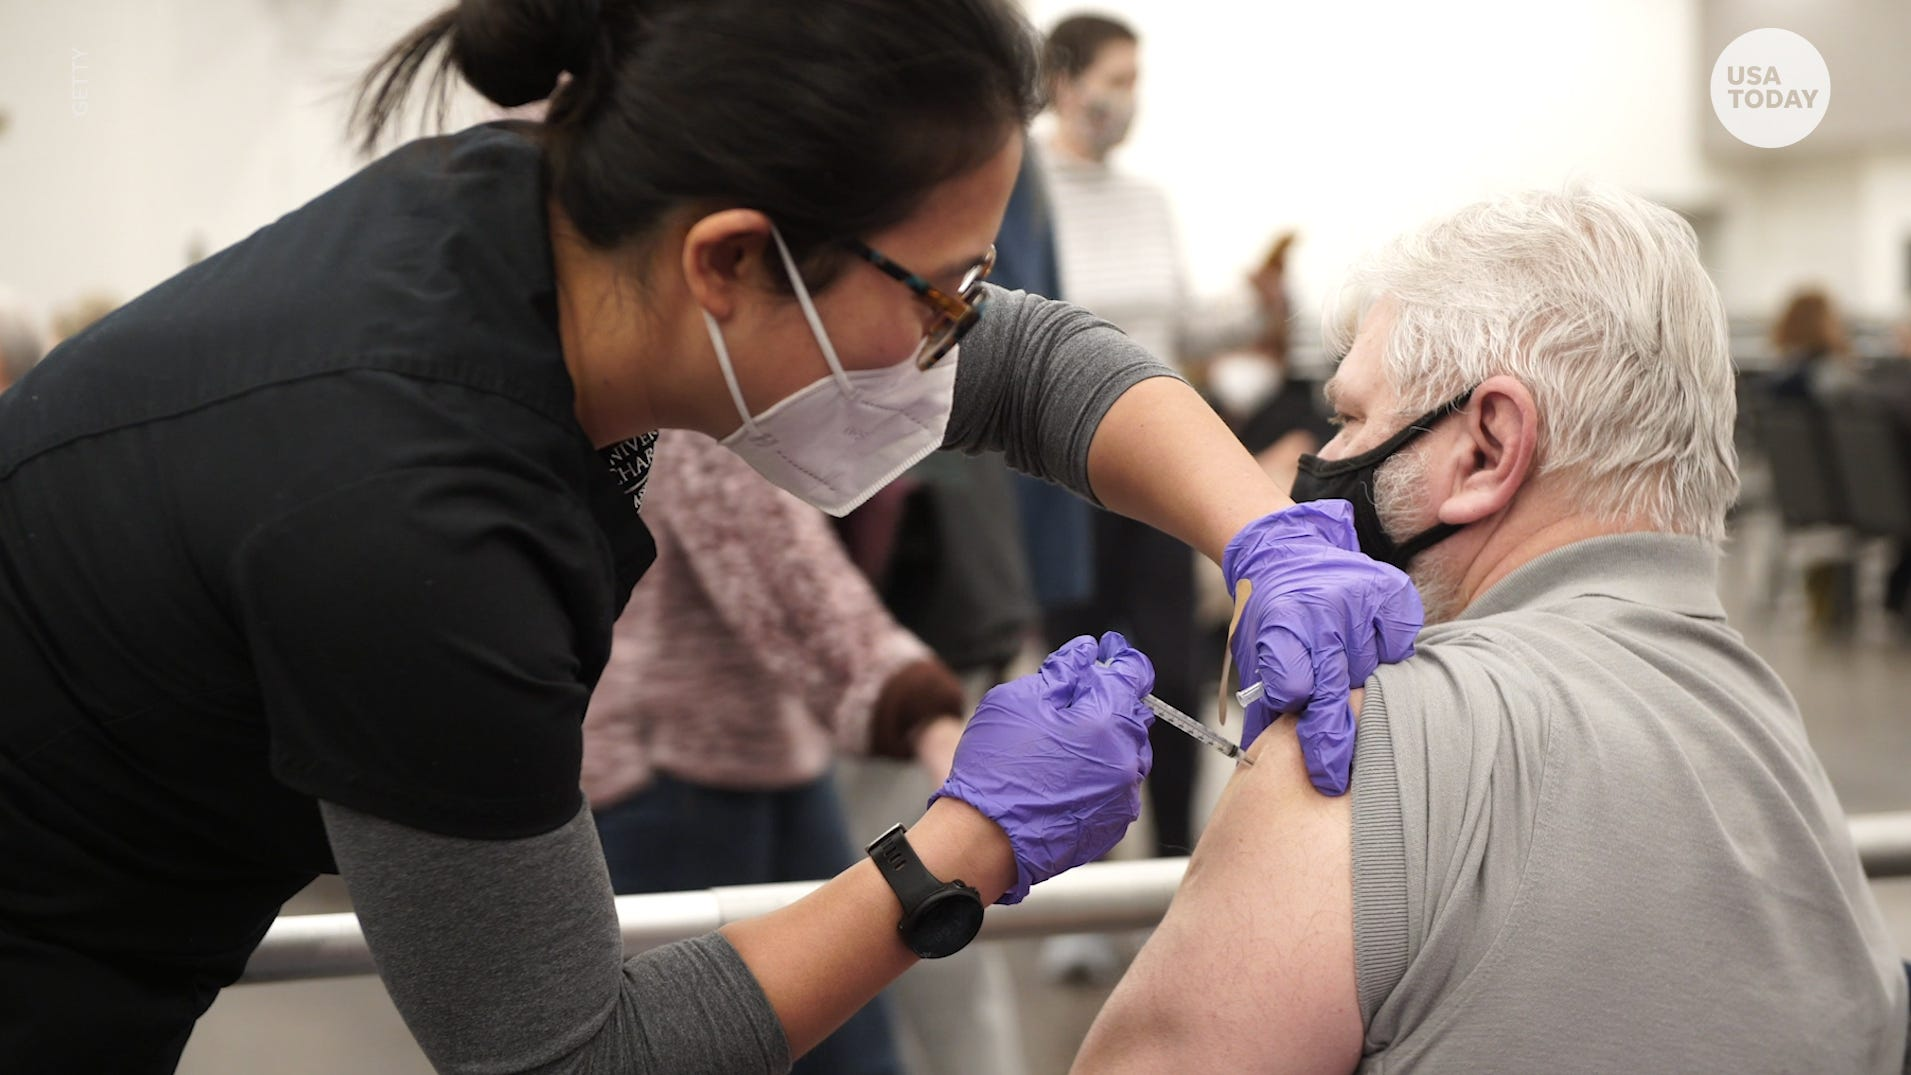 CDC endorses COVID-19 vaccine boosters for people 65 and older, high-risk patients